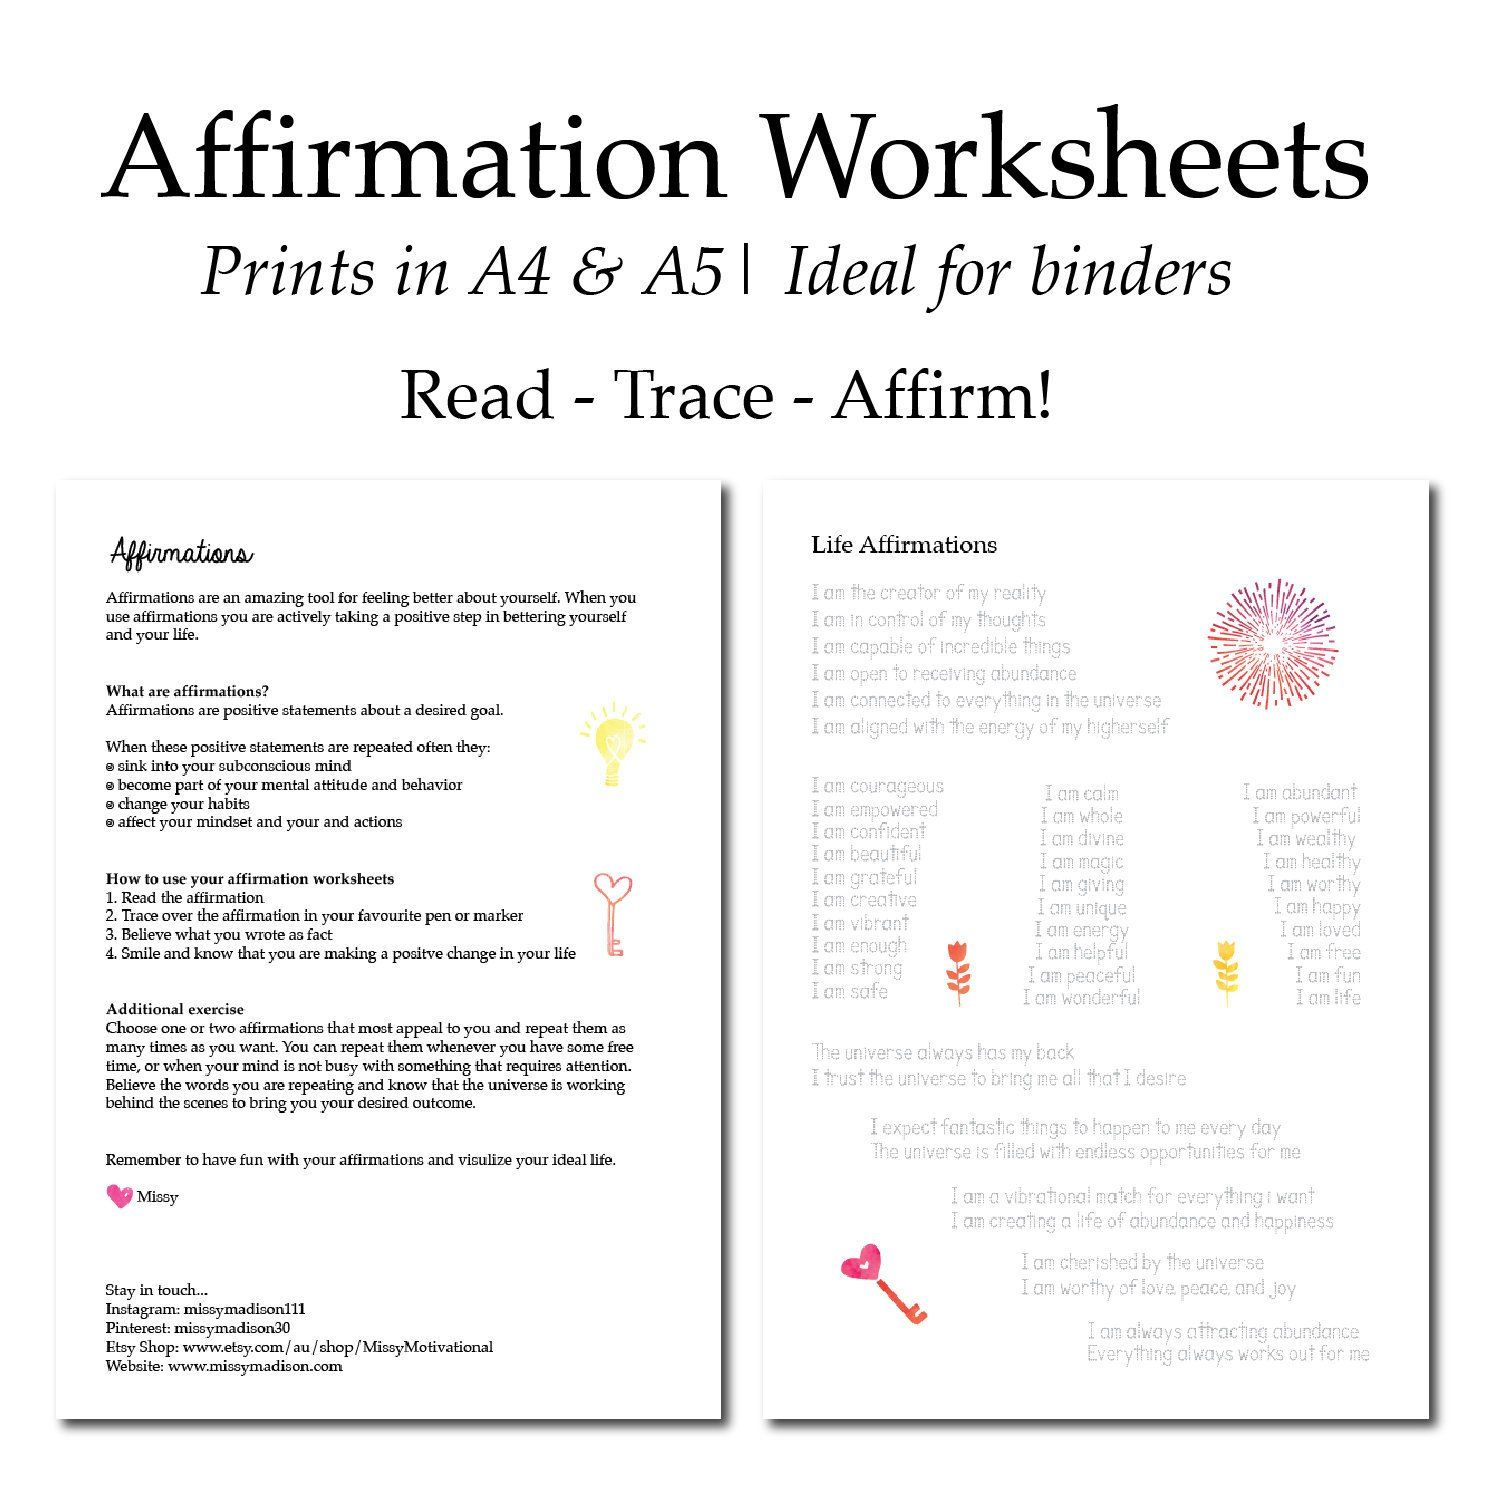 Affirmation Worksheets